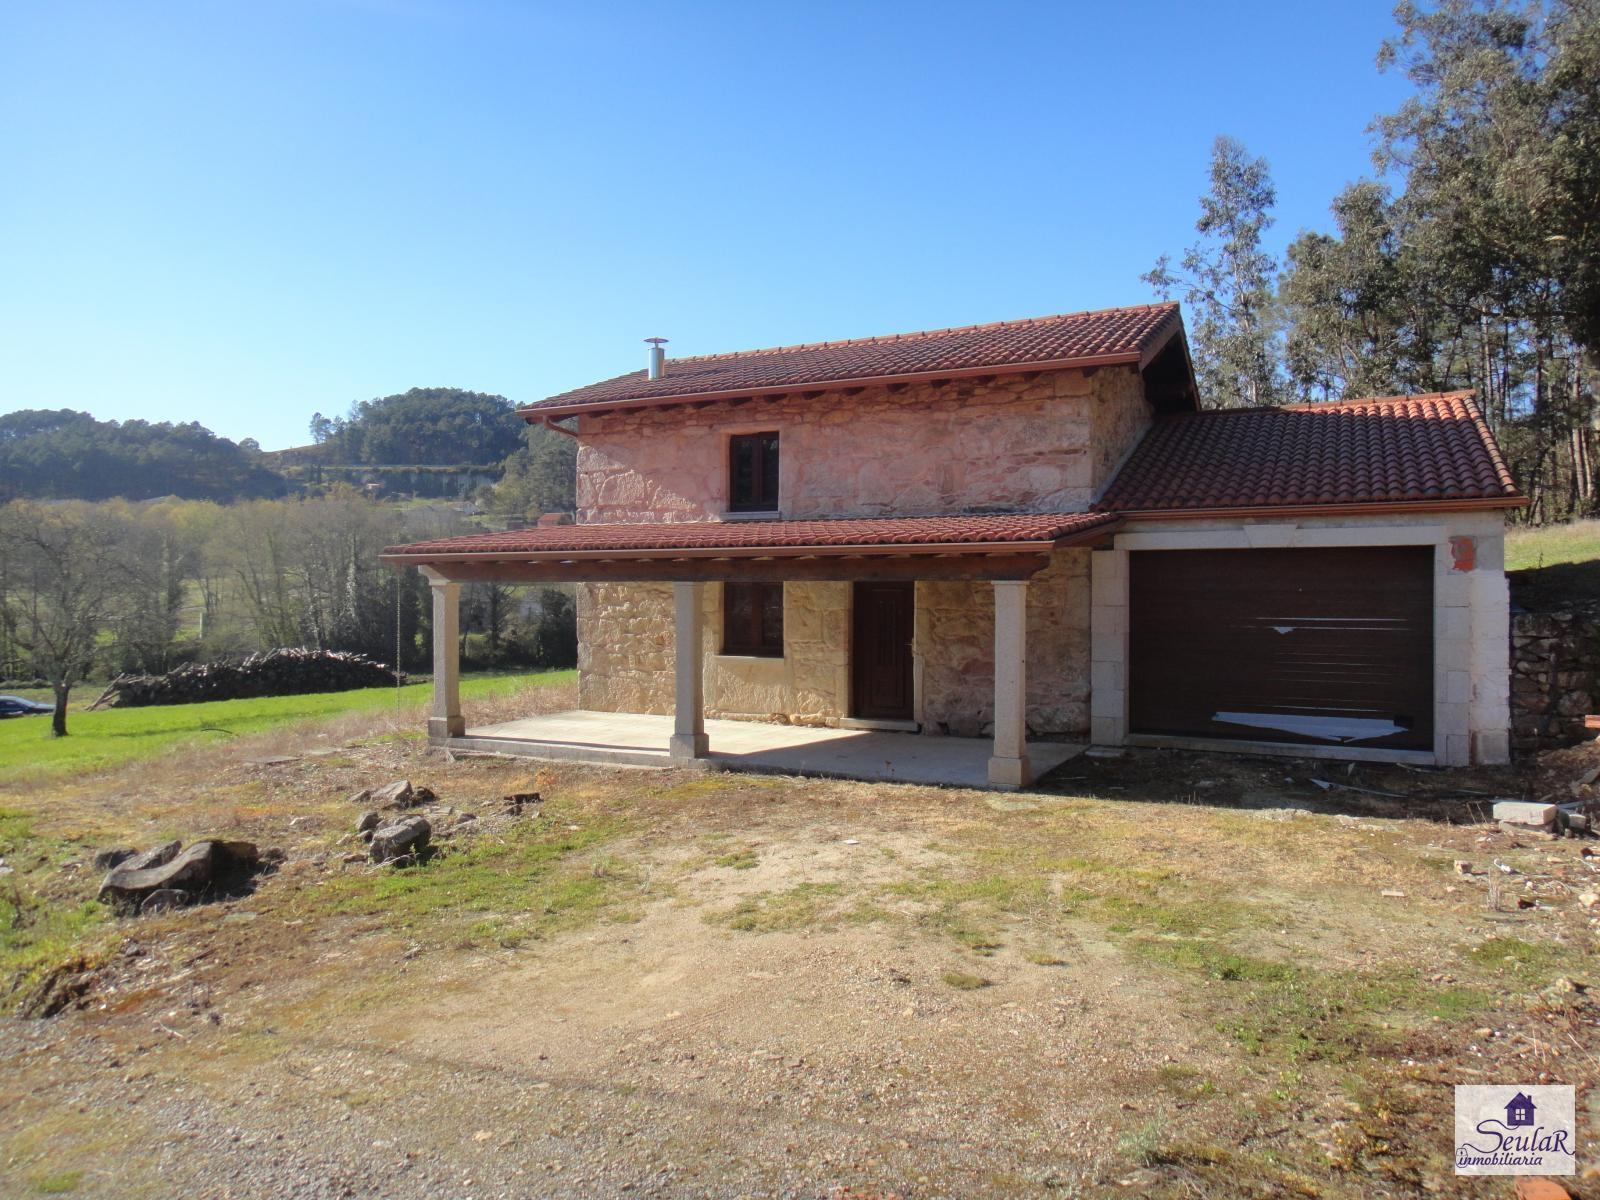 House for sale in Noia, 120.000 €